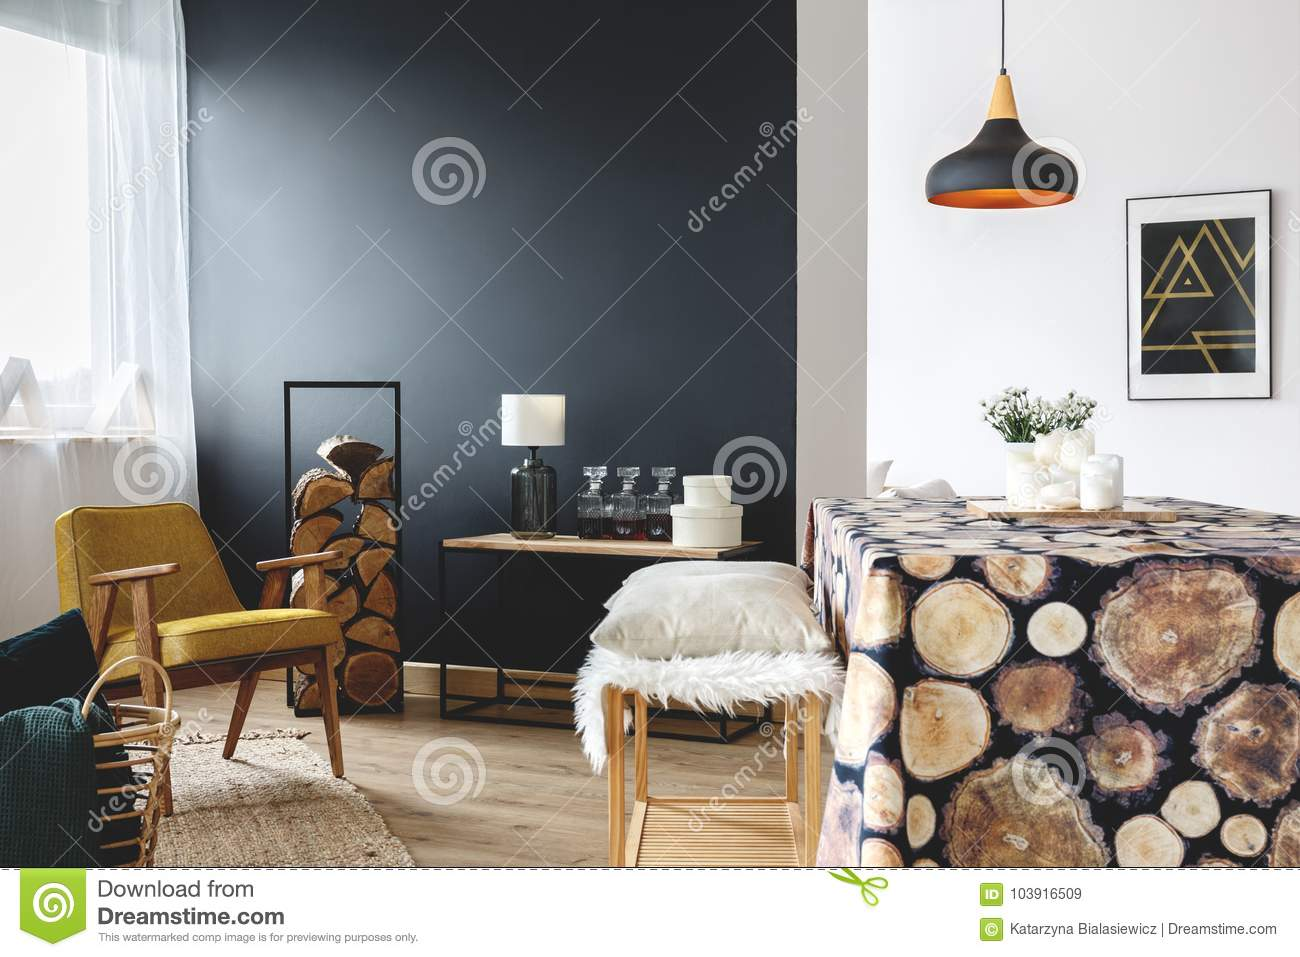 Dining Room With Wood Decoration Stock Image Image Of Details Long 103916509